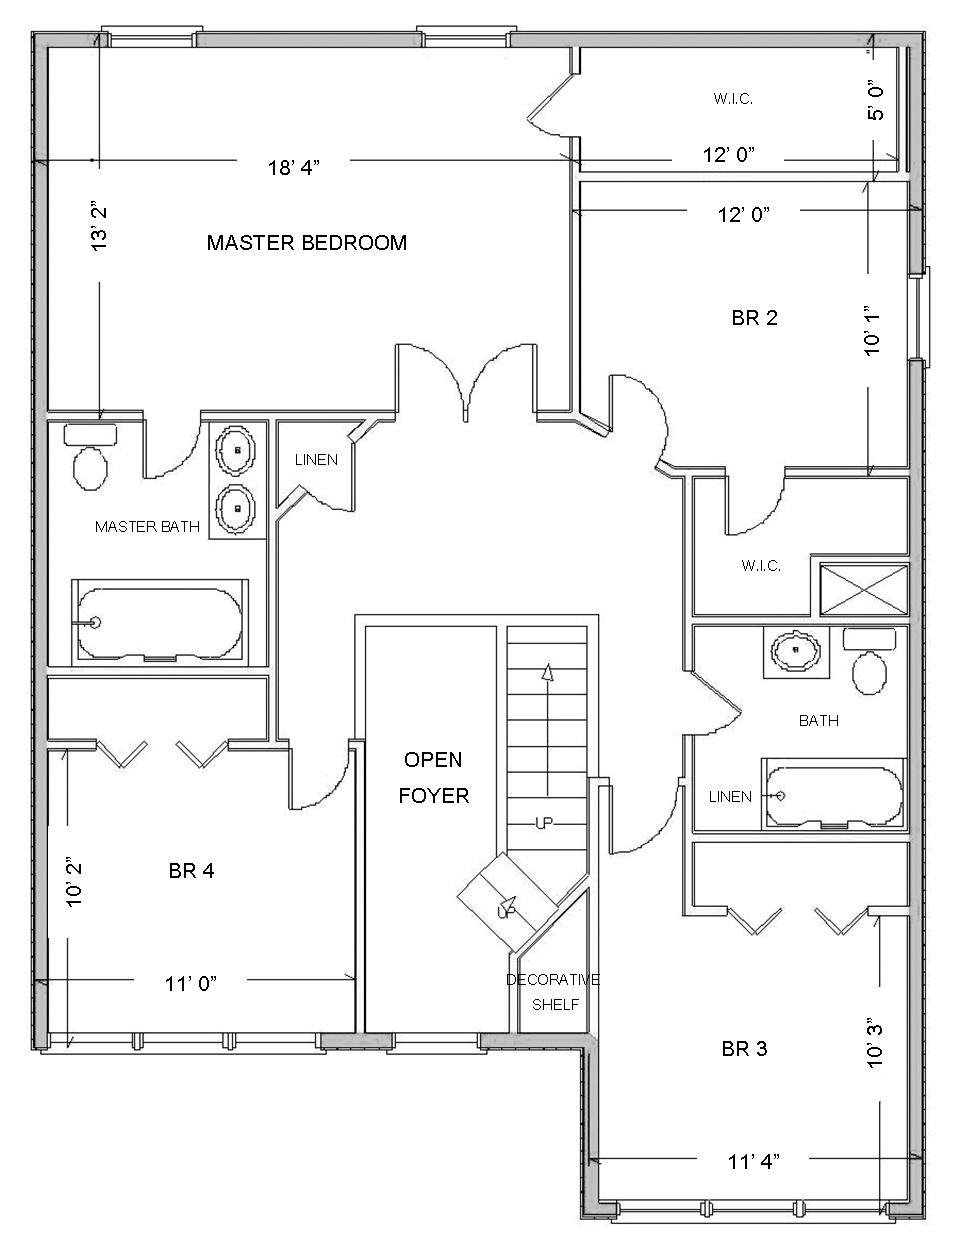 Digital smart draw floor plan with smartdraw software for Blank floor plan